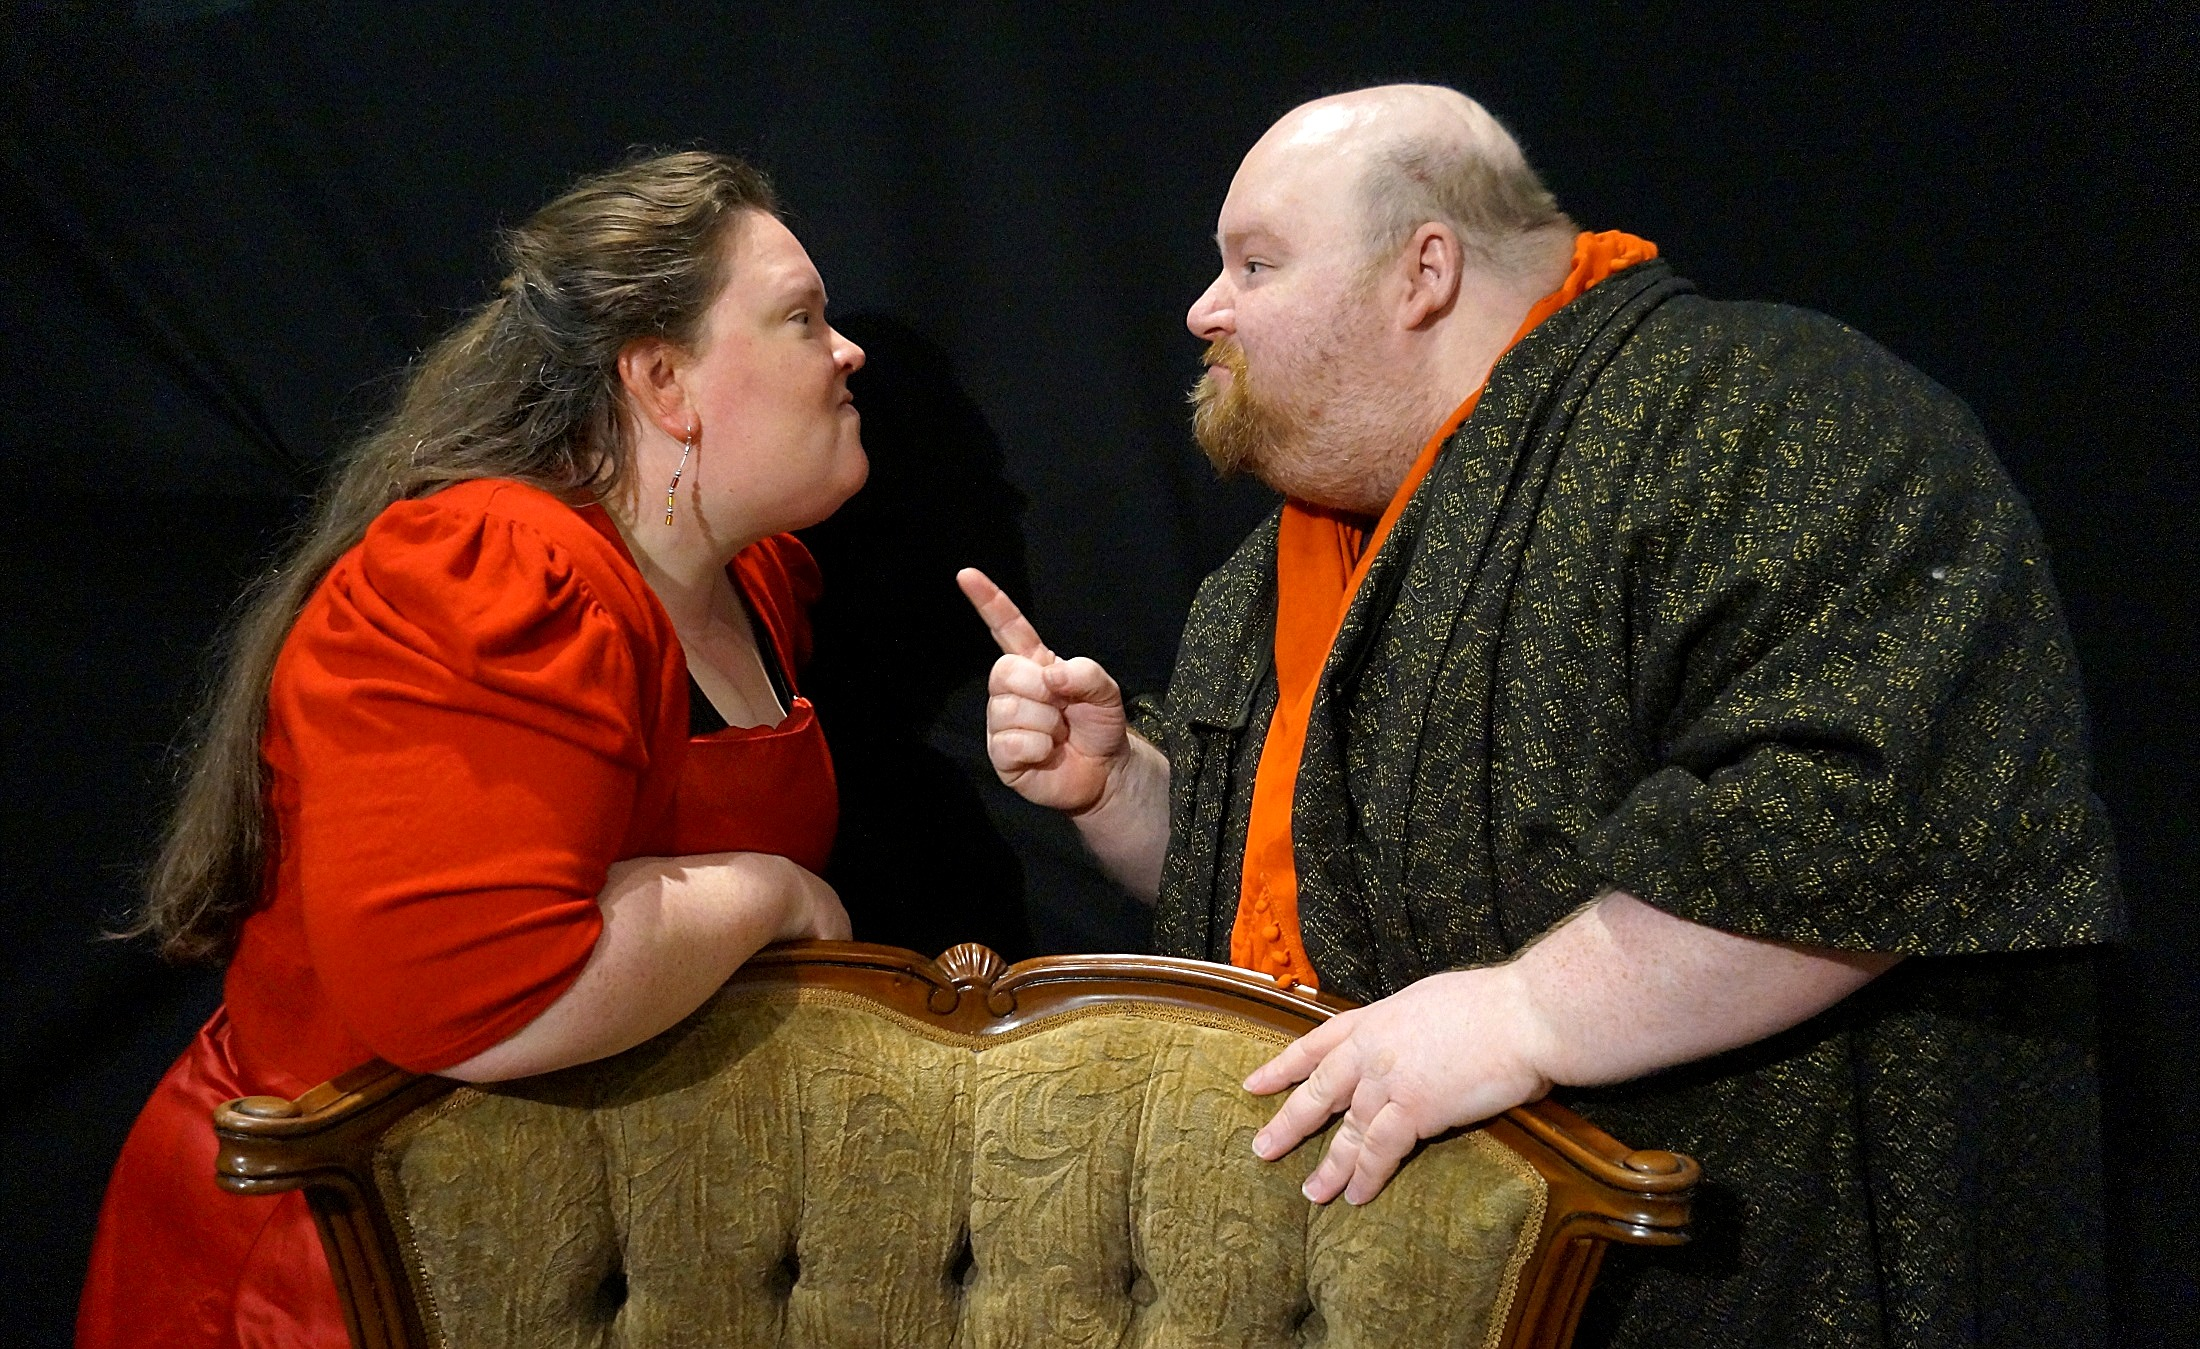 Real-life husband and wife Joanne and Michael Lamont play the lovers Beatrice and Benedick in  Much Ado About Nothing .